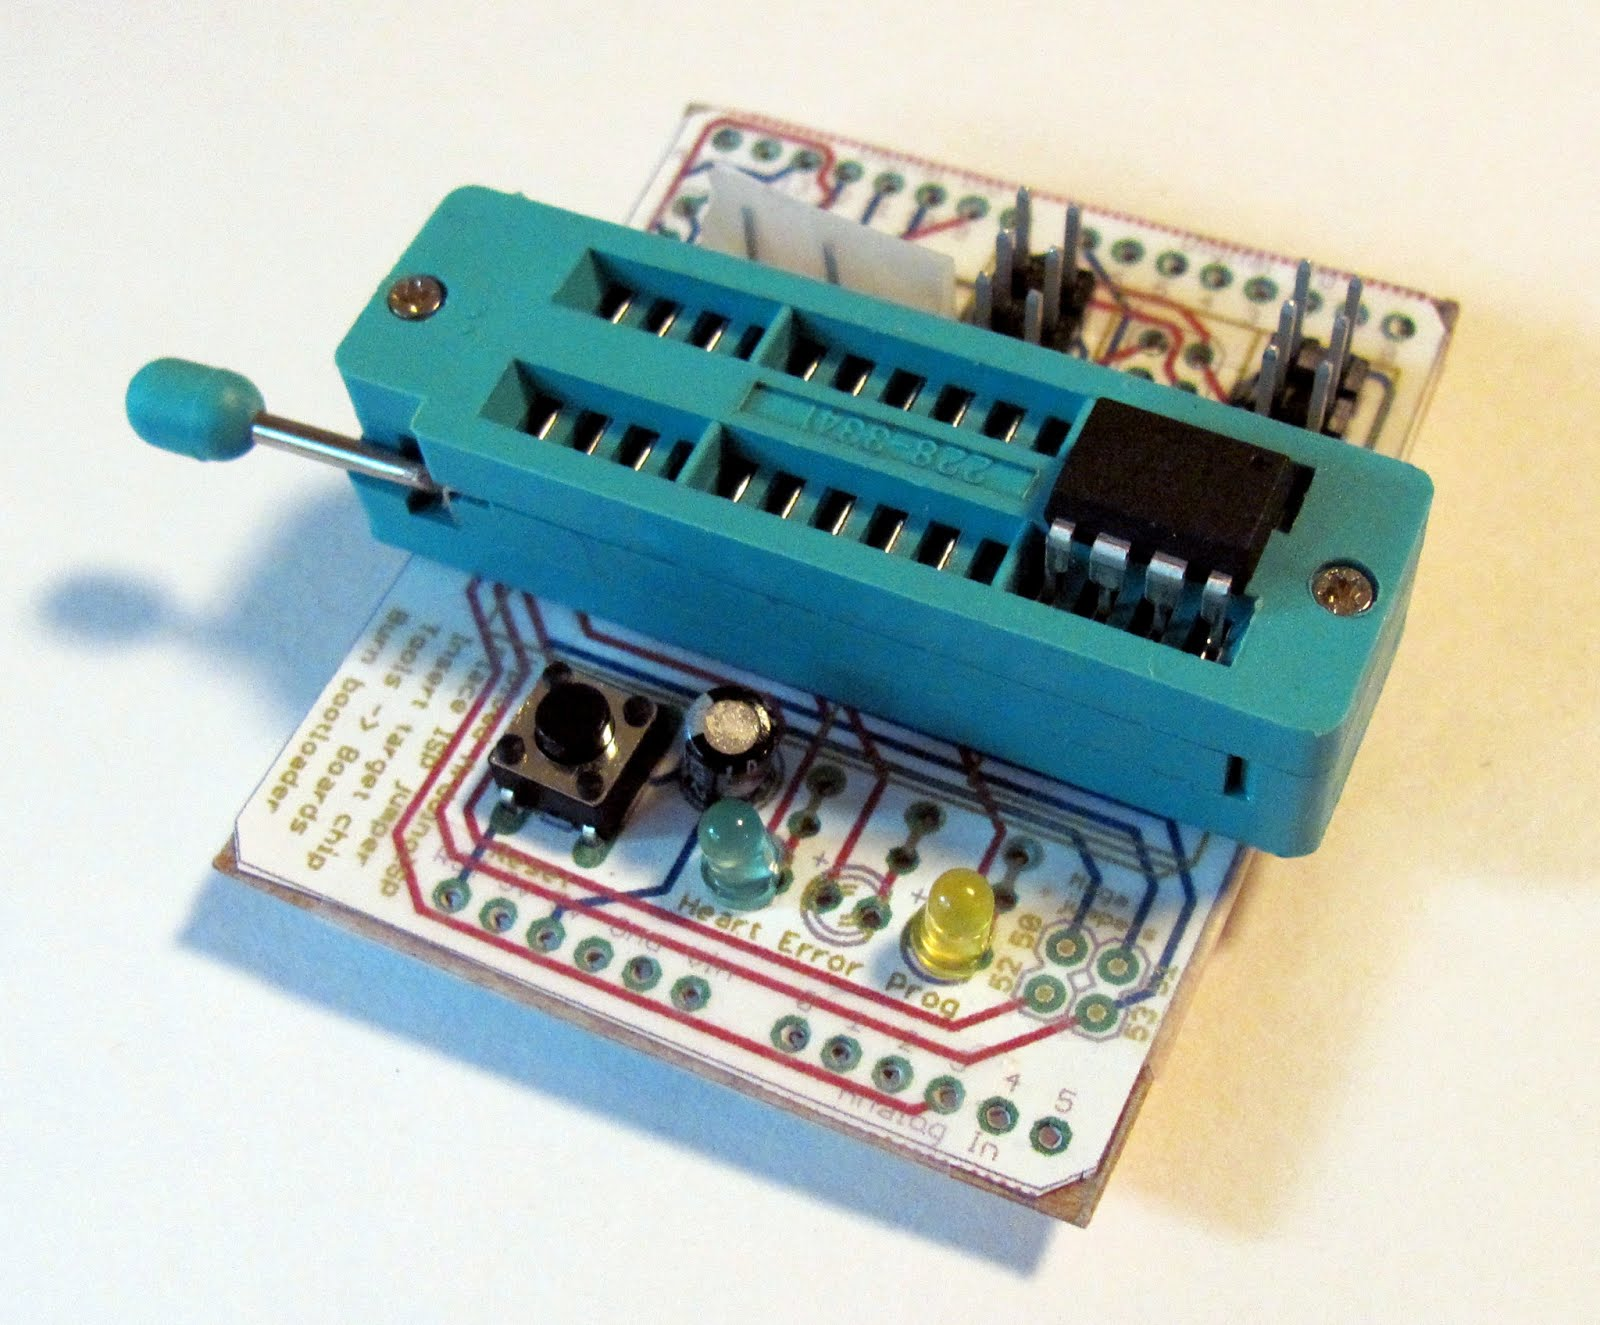 The Maker\'s Box: Anatomy of a Small Open Source Hardware Project